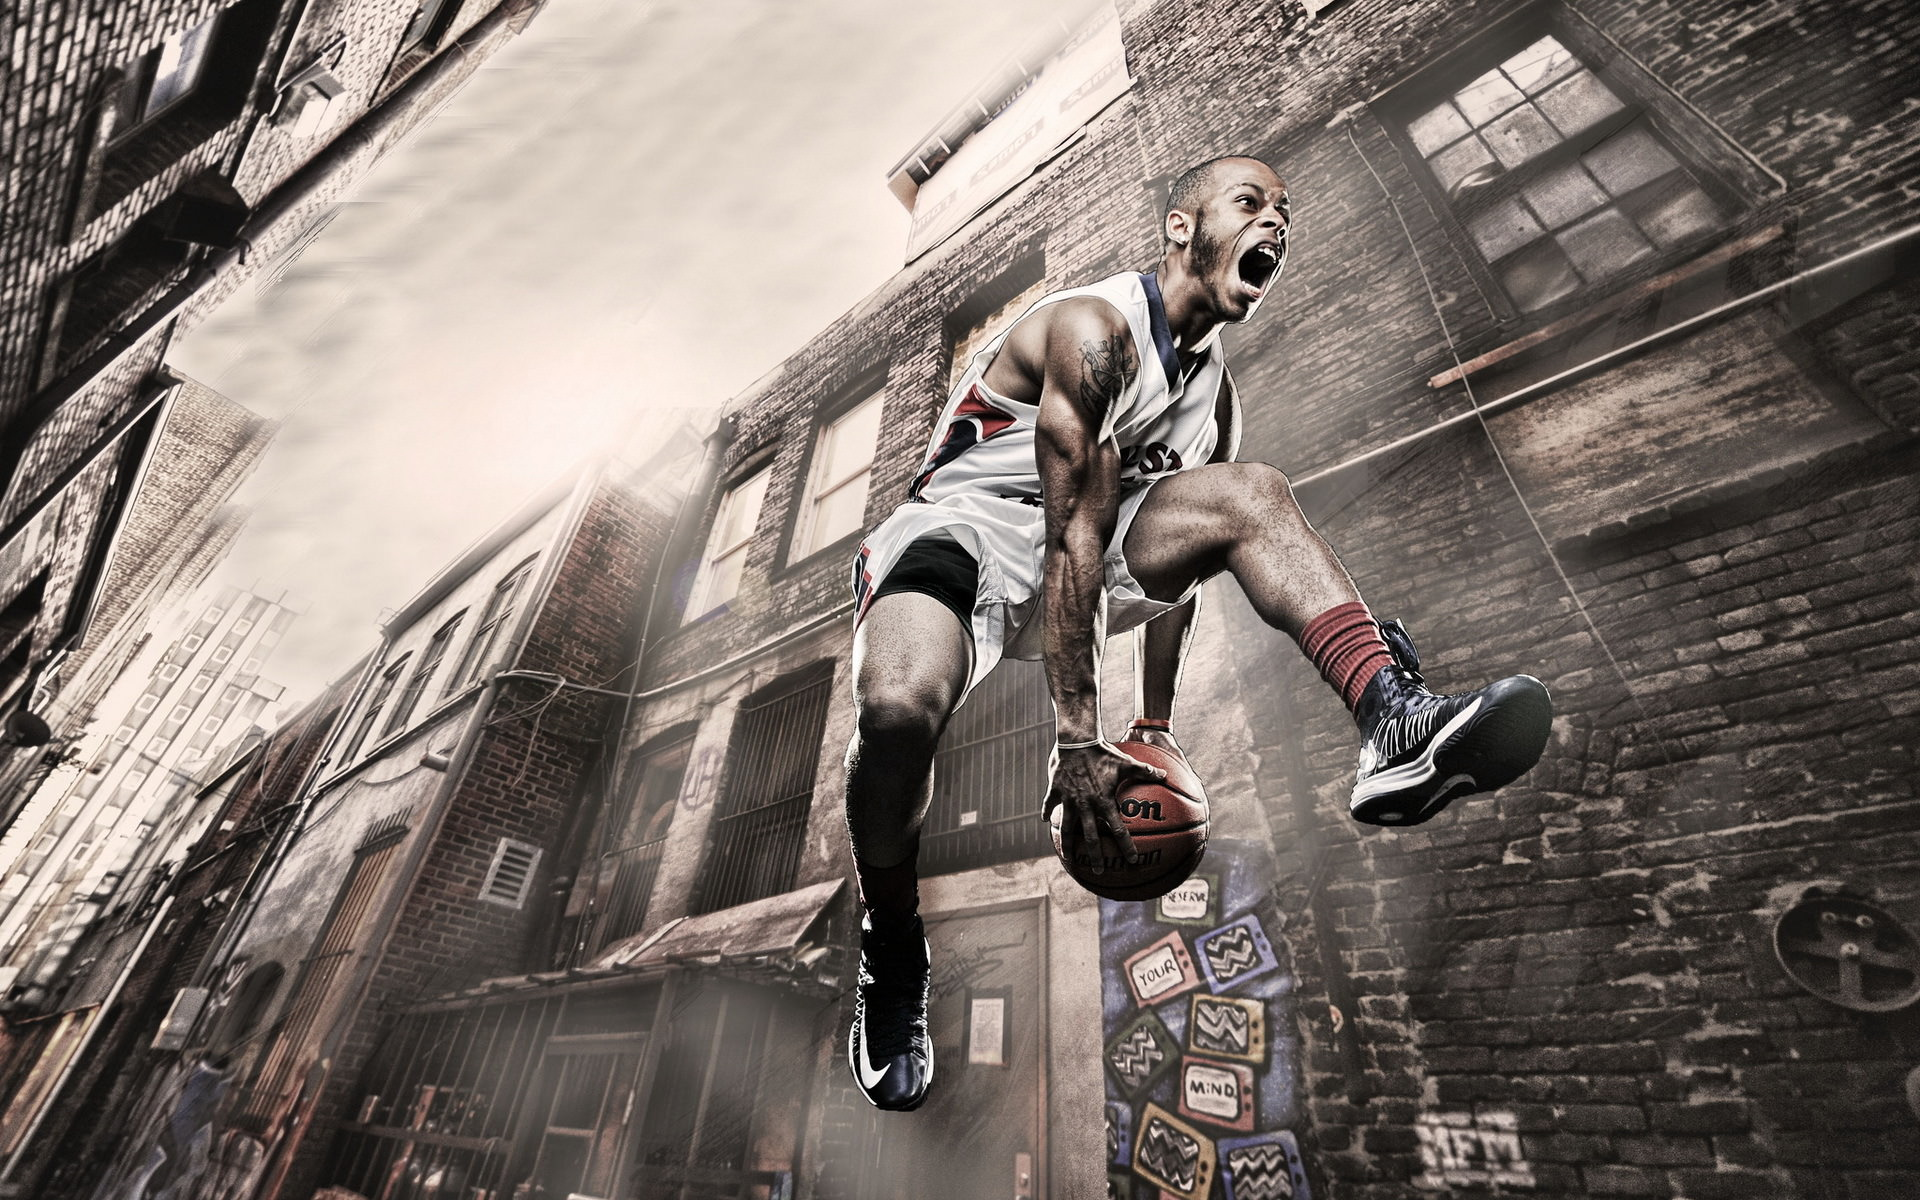 Street Basketball Background